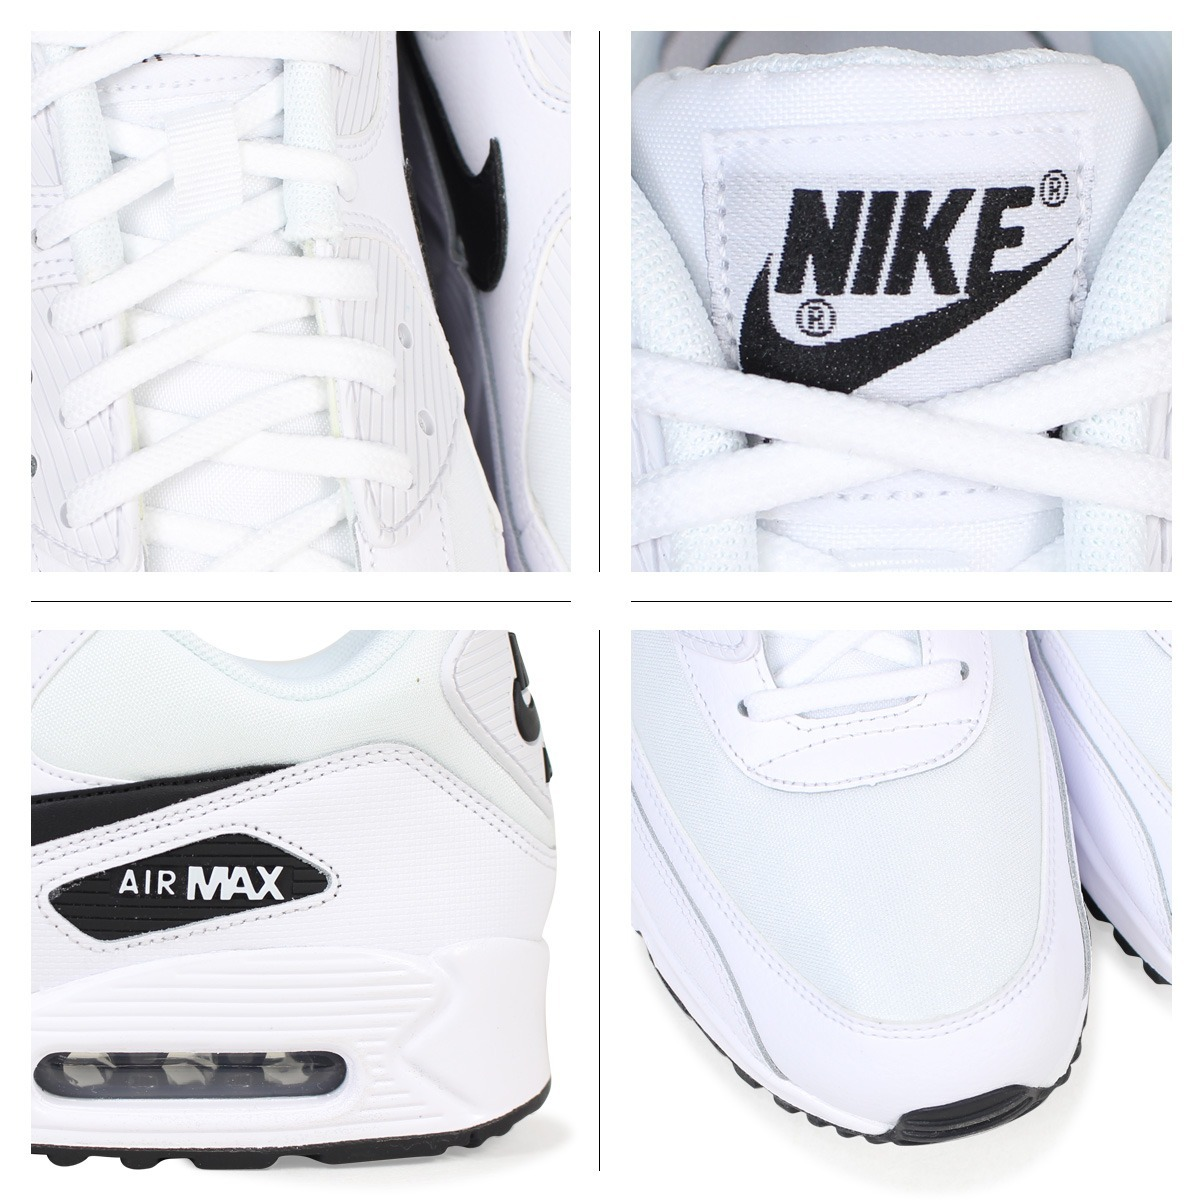 Zapatillas Hombre Mujer Nike Air Max 90 Essential Sneakerbox ... 326be1c4299